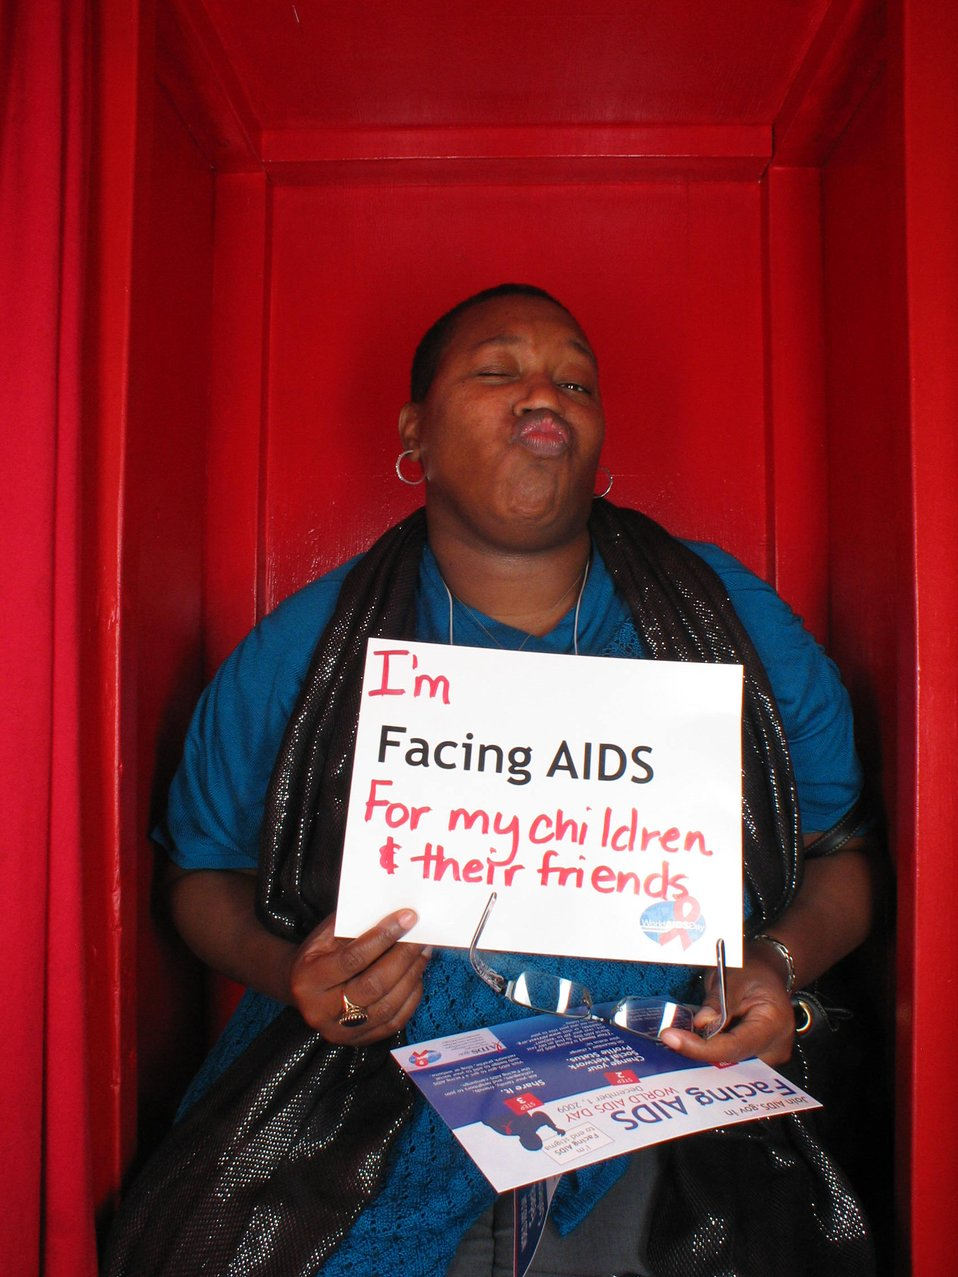 I'm Facing AIDS for my children and their friends